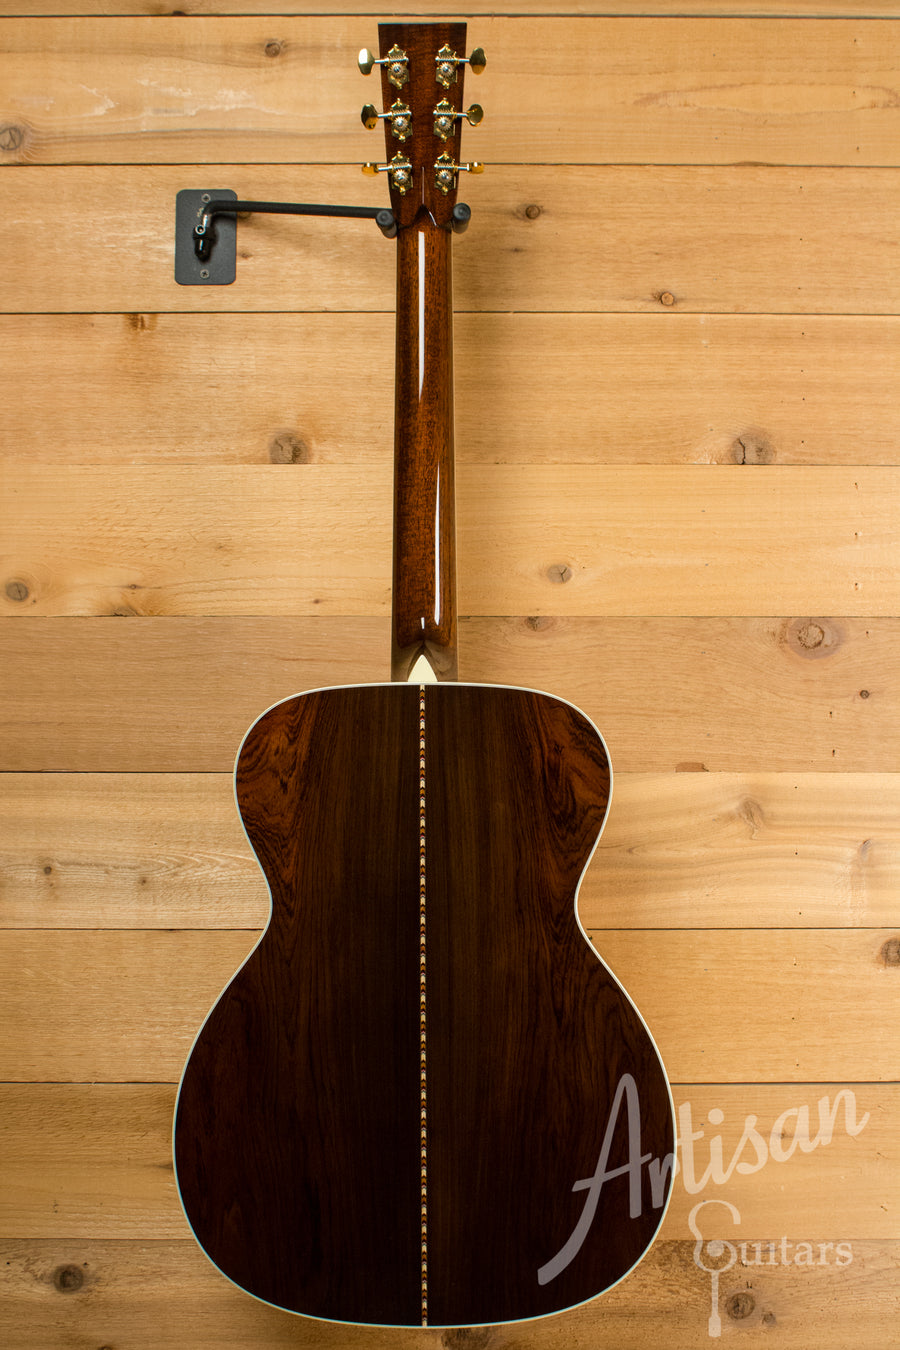 Collings OM3A Adirondack and Brazilian Rosewood with Adirondack Braces Pre-Owned 2015 ID-11043 - Artisan Guitars